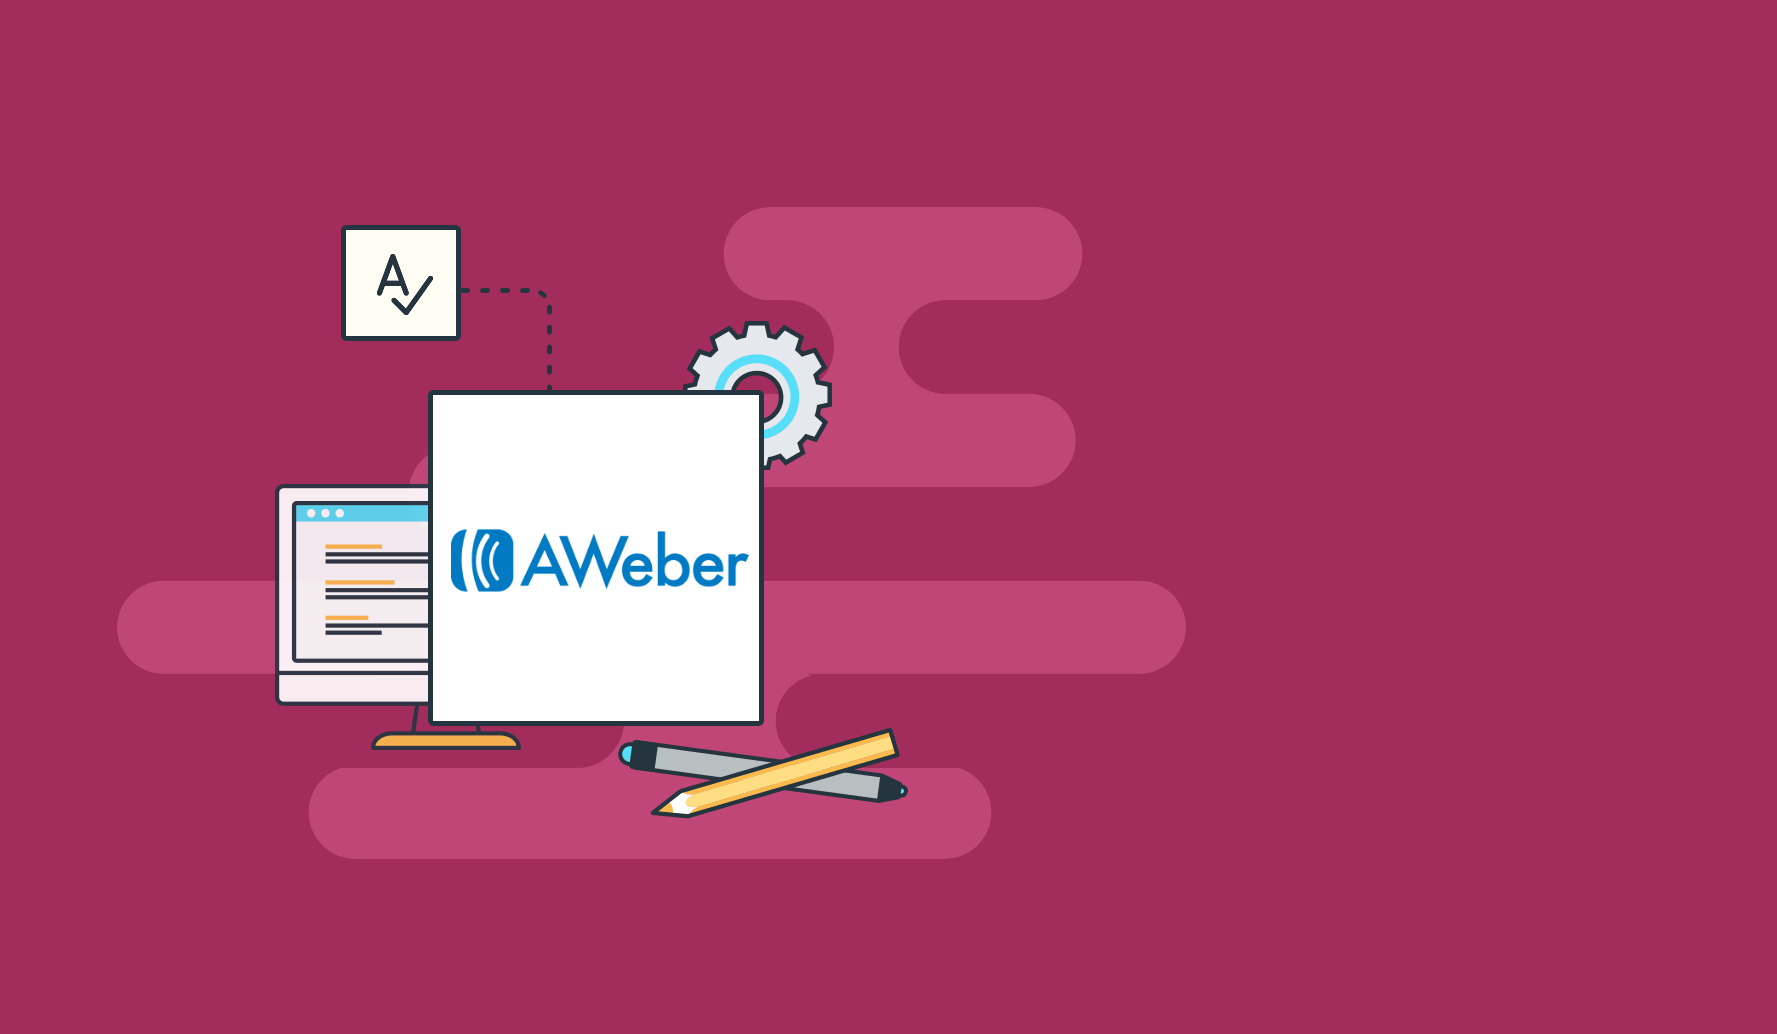 How To Make A Popup With Aweber